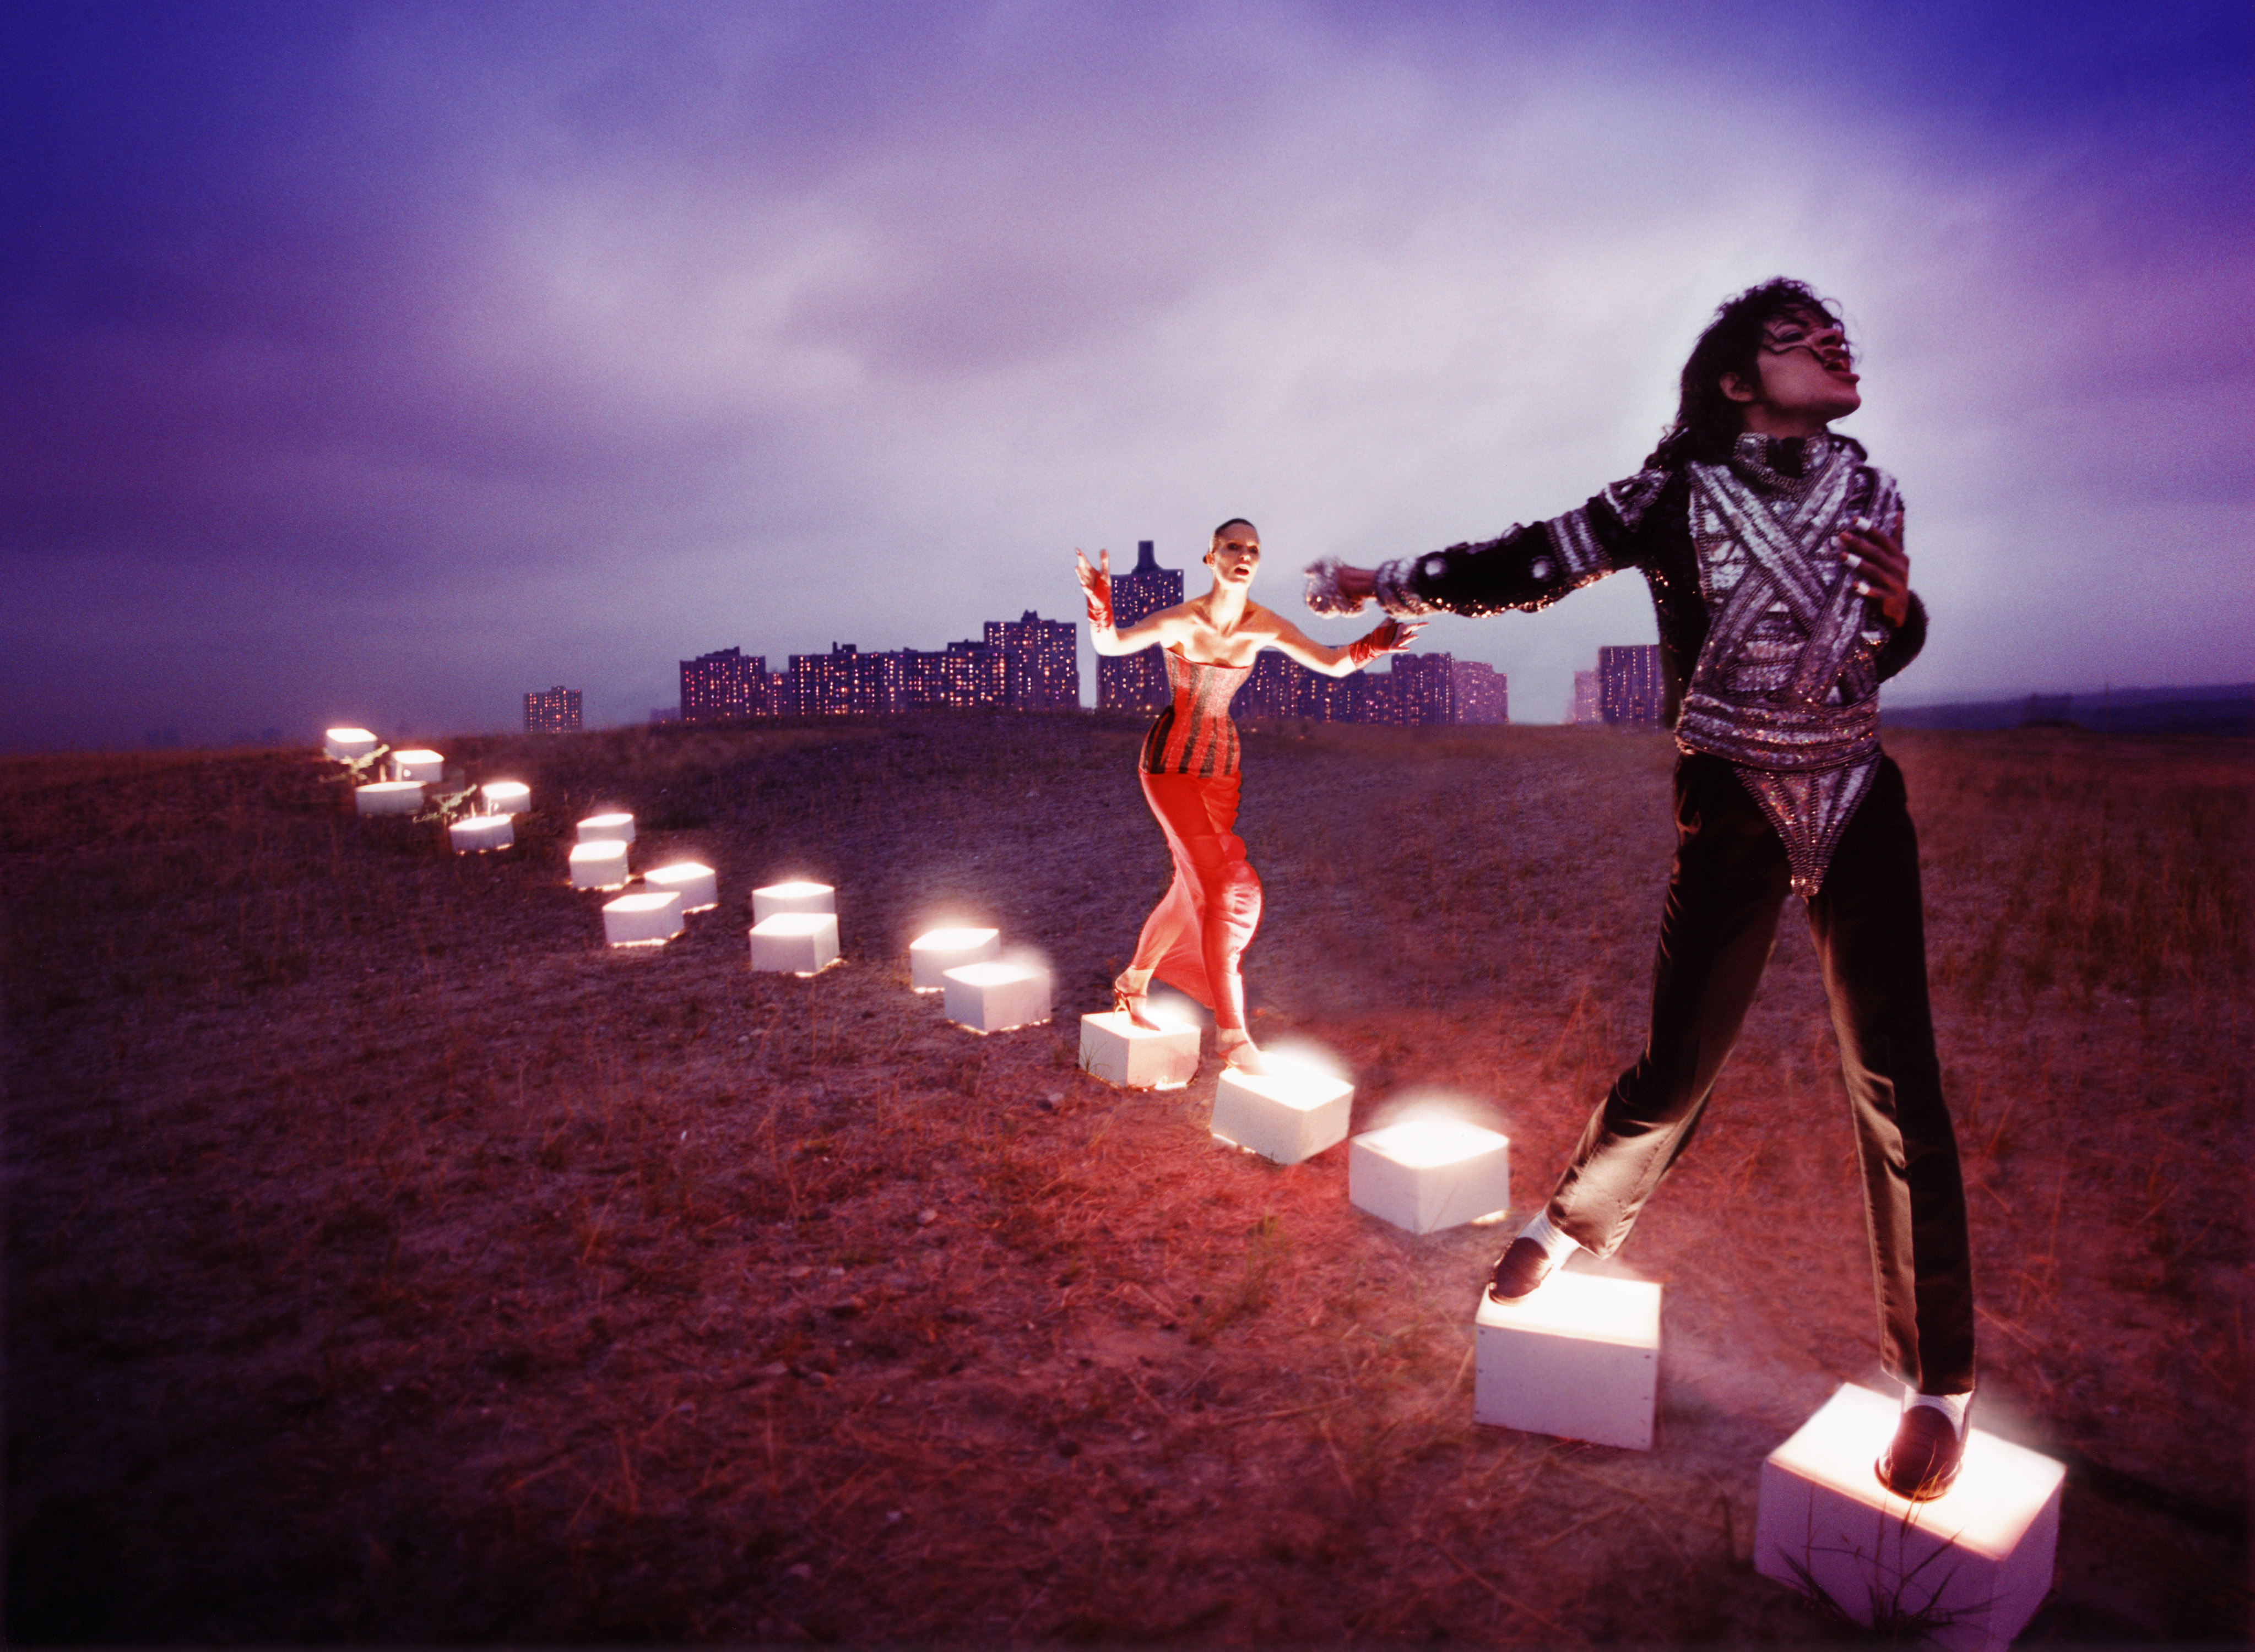 An Illuminating Path by David LaChapelle (National Portrait Gallery)